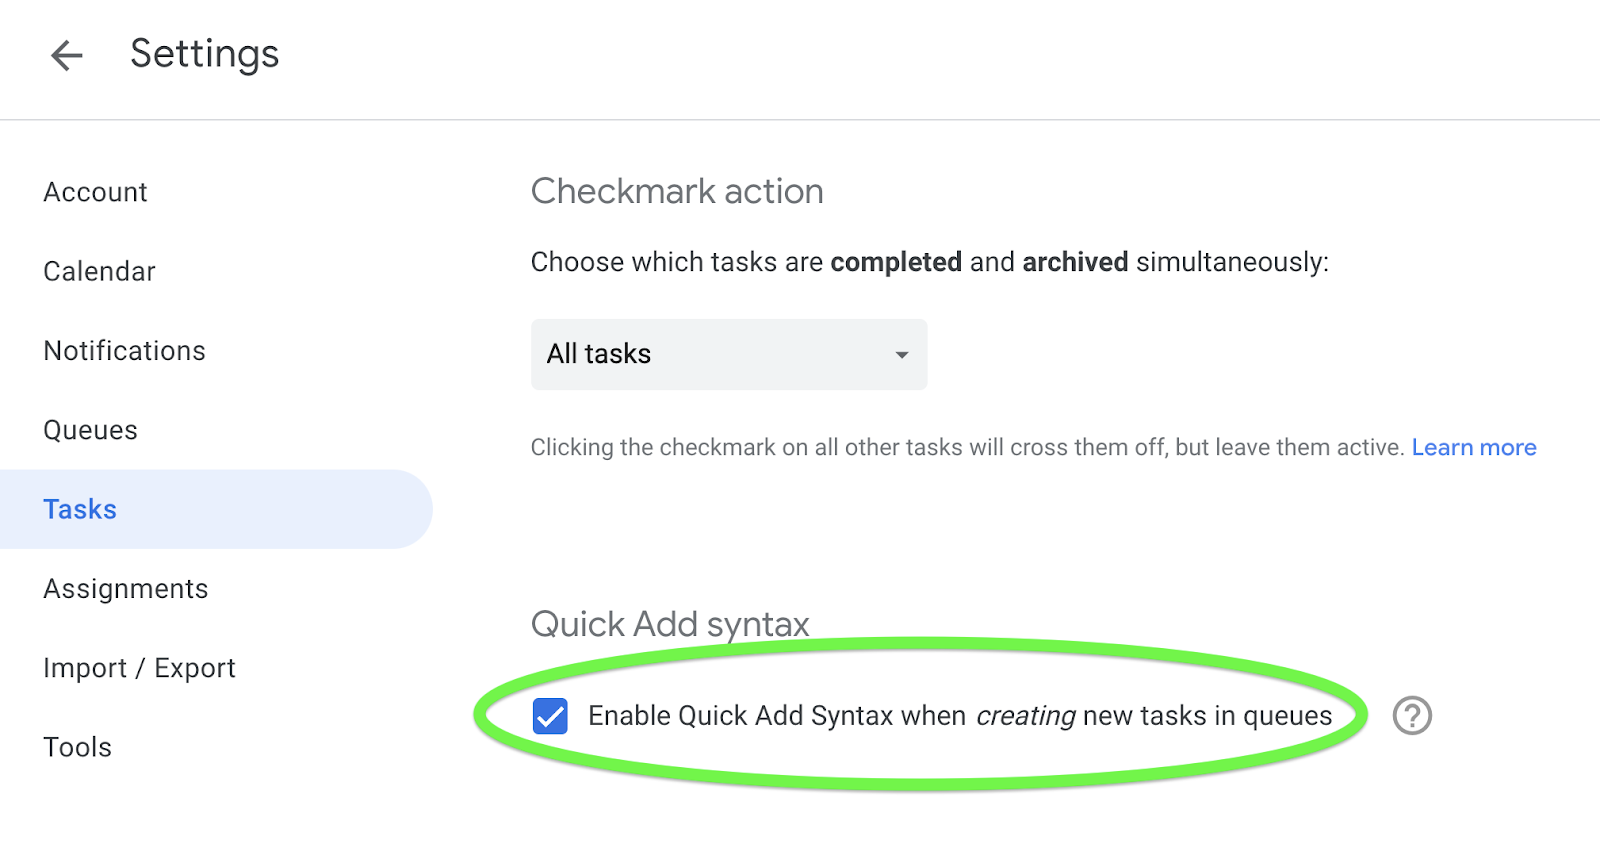 Option to enable or disable Quick Add Syntax when creating new tasks in GQueues